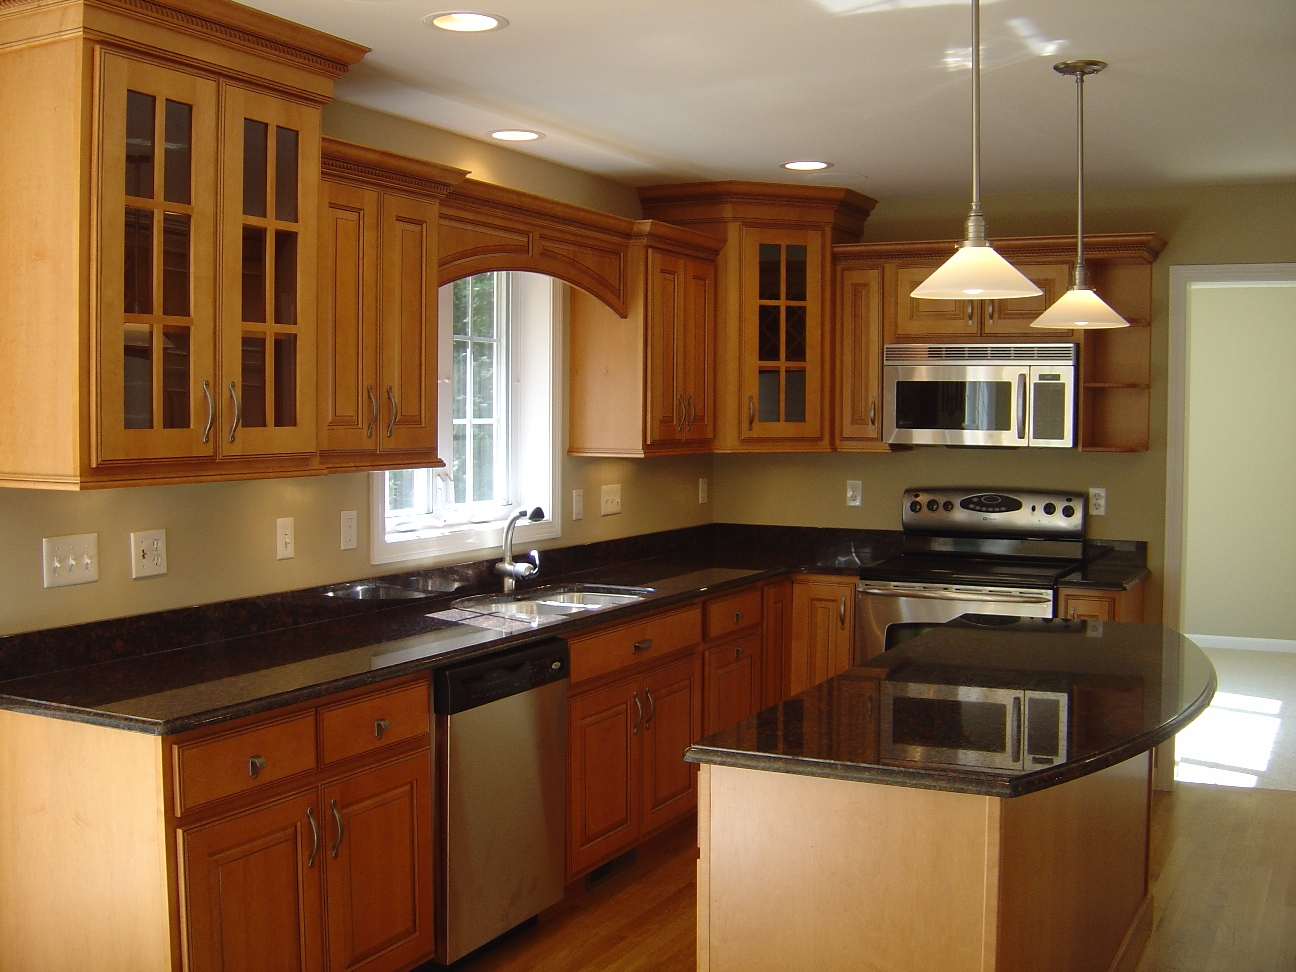 Kitchen designs photos find kitchen designs for Kitchen redo ideas